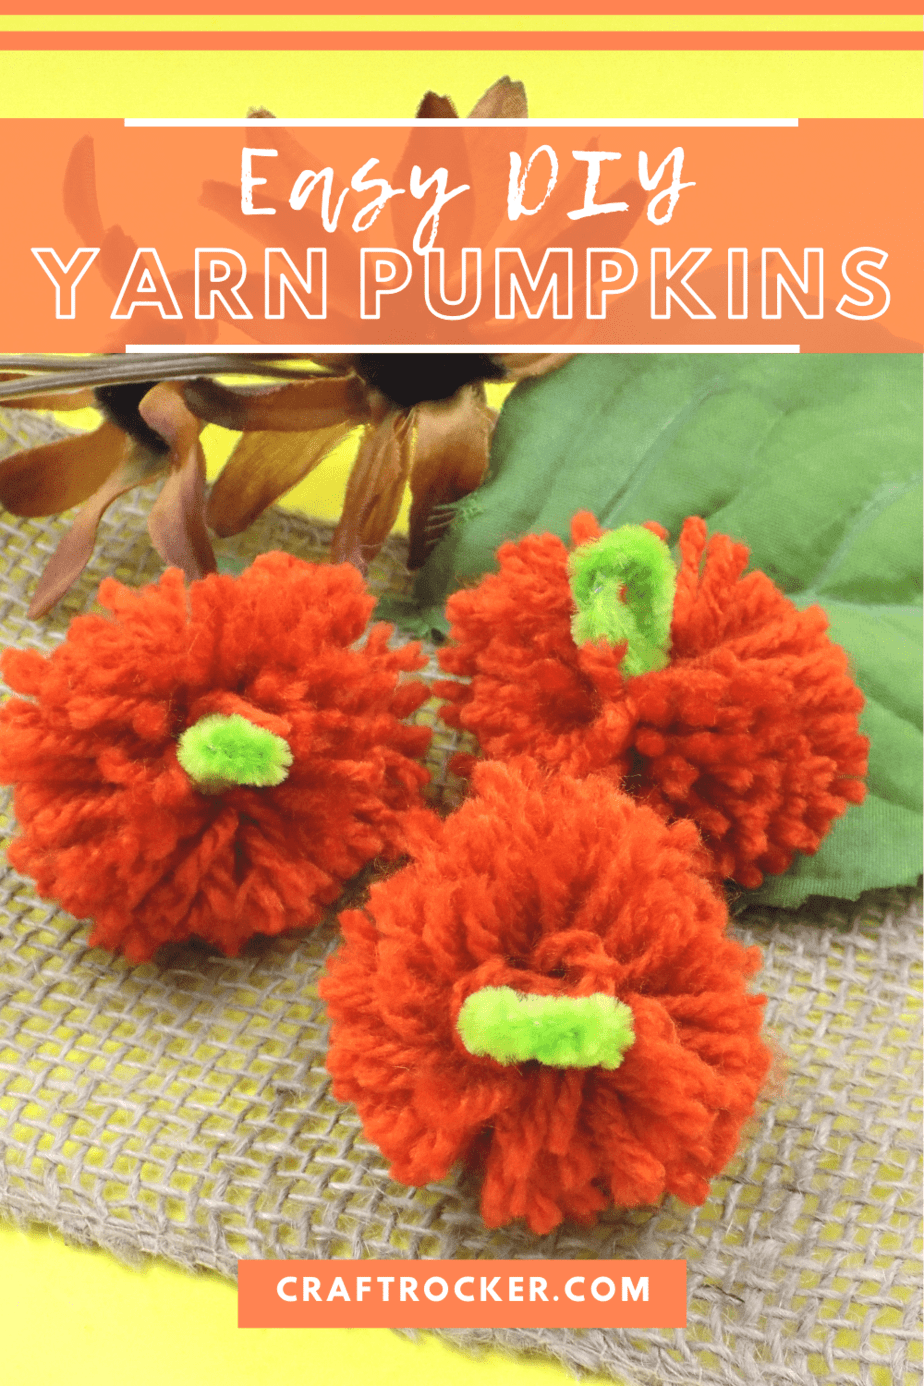 Close Up of Yarn Pumpkins with text overlay - Easy DIY Yarn Pumpkins - Craft Rocker